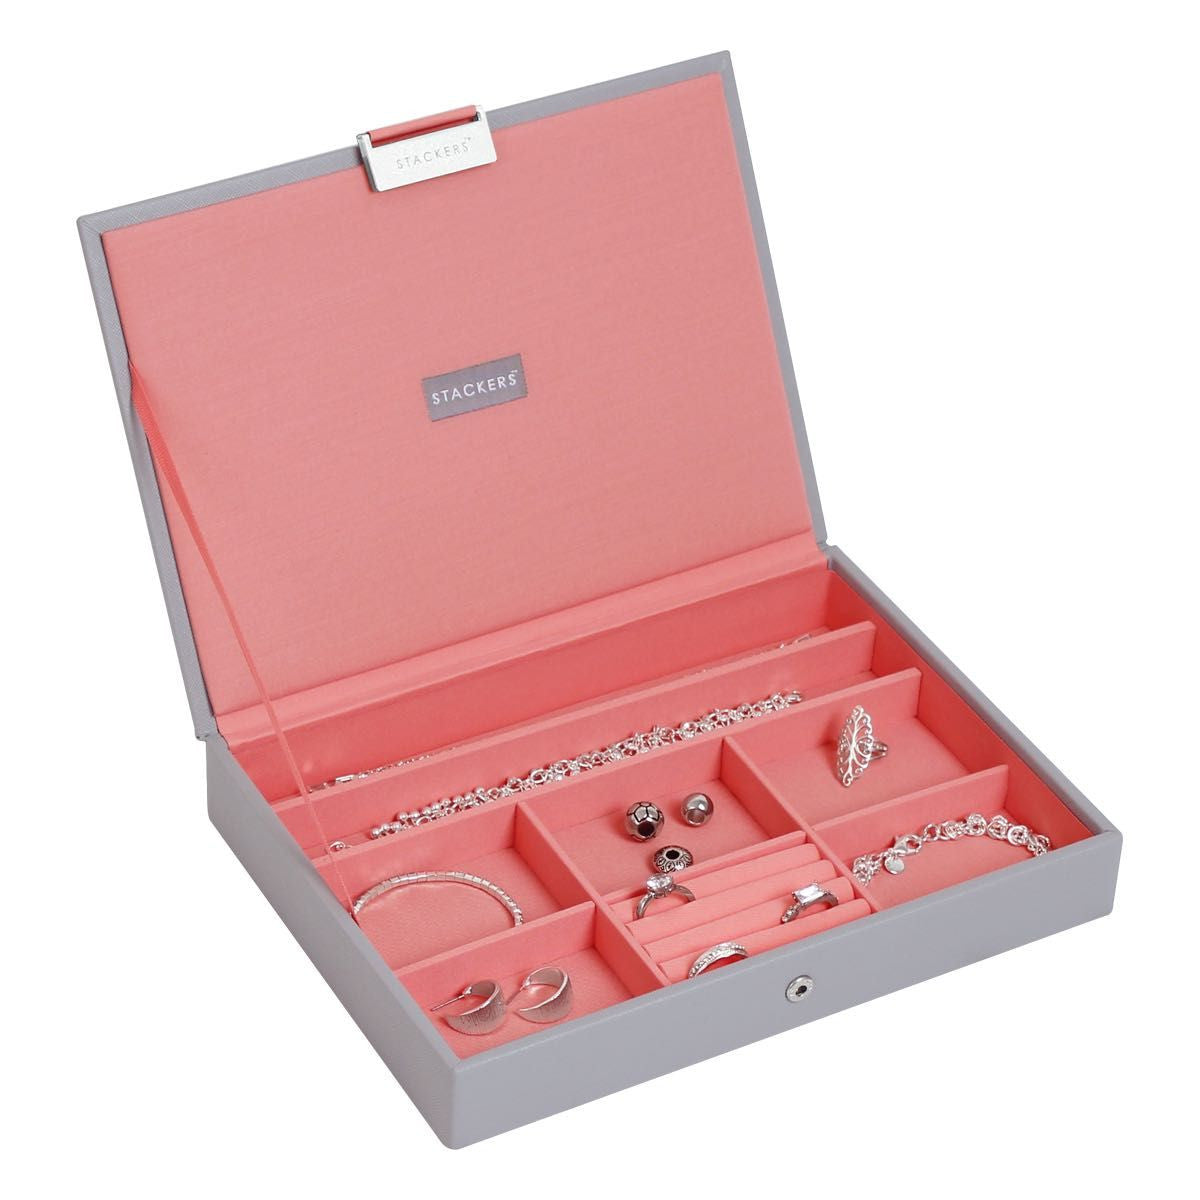 Stackers Dove Grey & Coral Classic Lidded Jewellery Tray